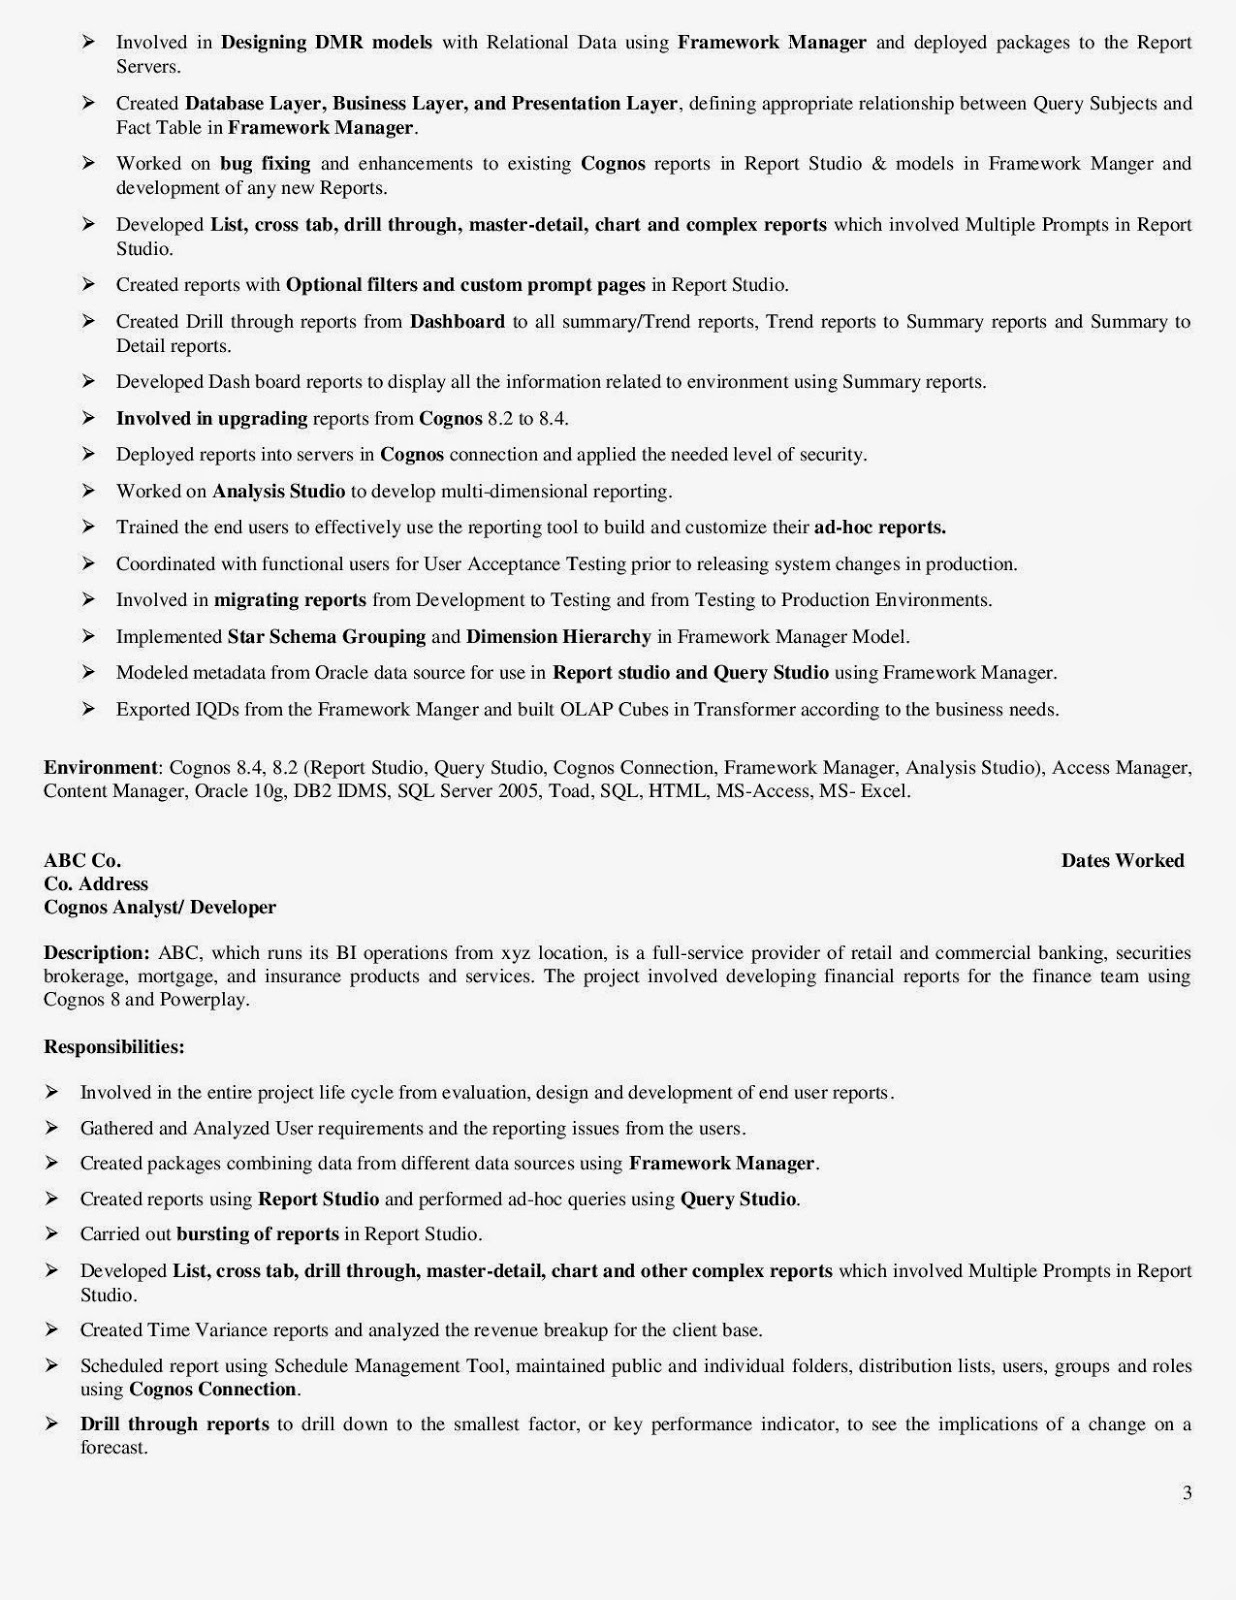 equity research associate resume example bestsampleresume an equity